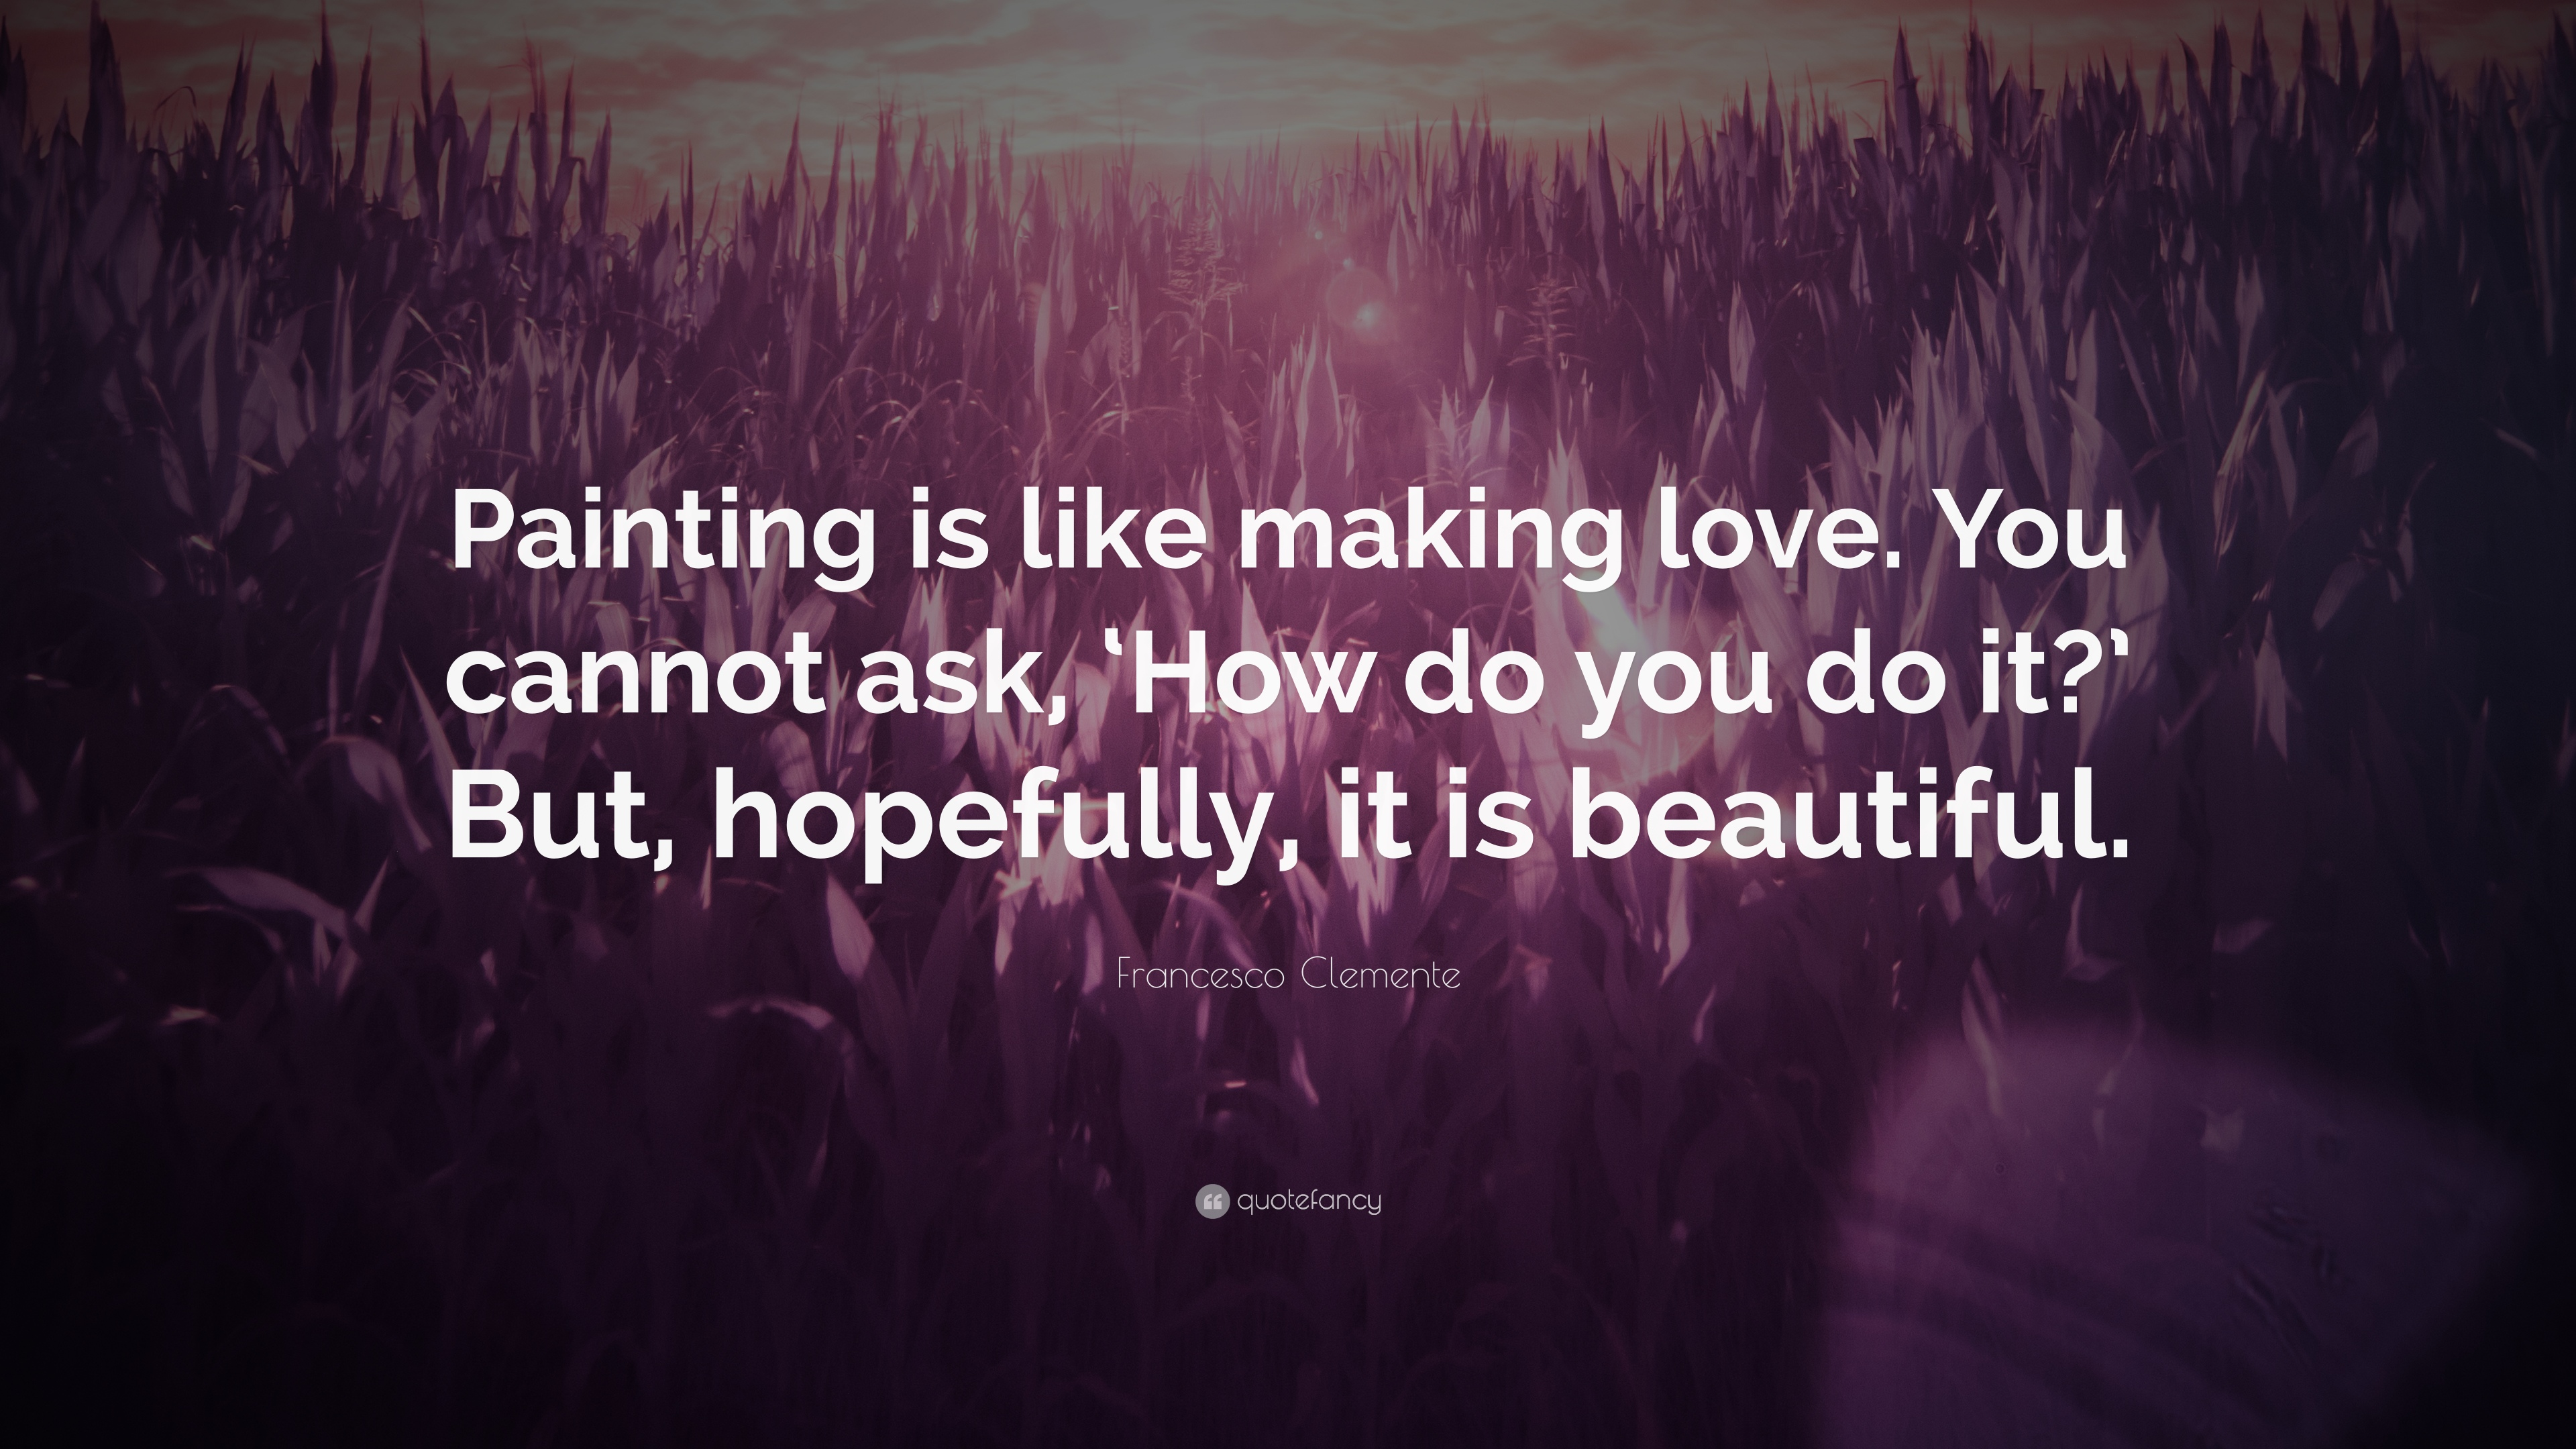 Making Love Quotes Pictures Francesco Clemente Quotes 19 Wallpapers  Quotefancy